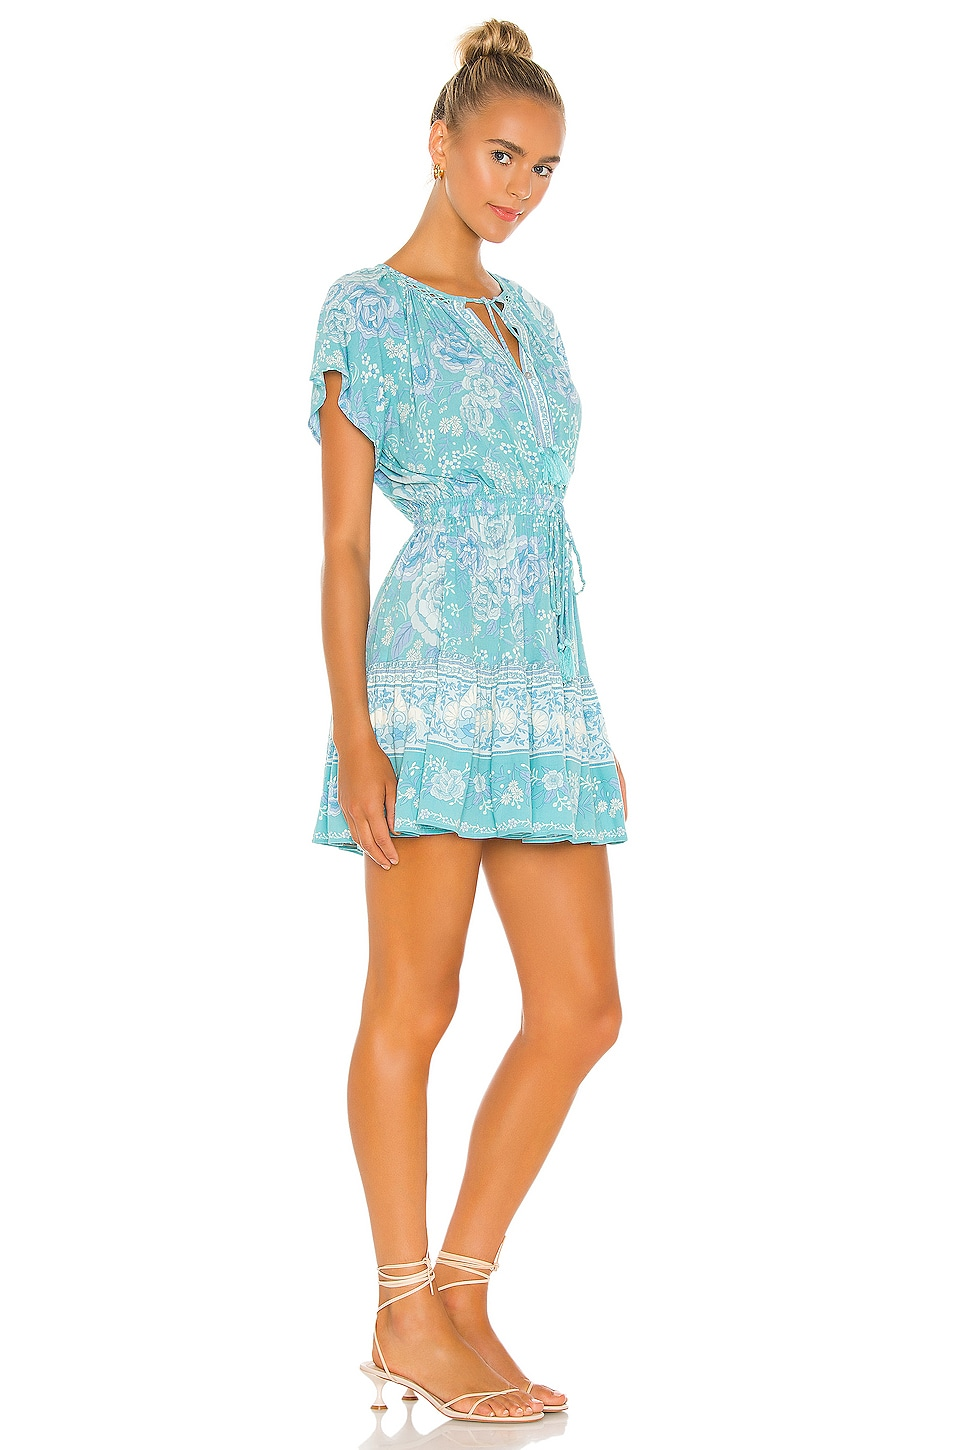 X REVOLVE Mystic Playdress, view 3, click to view large image.